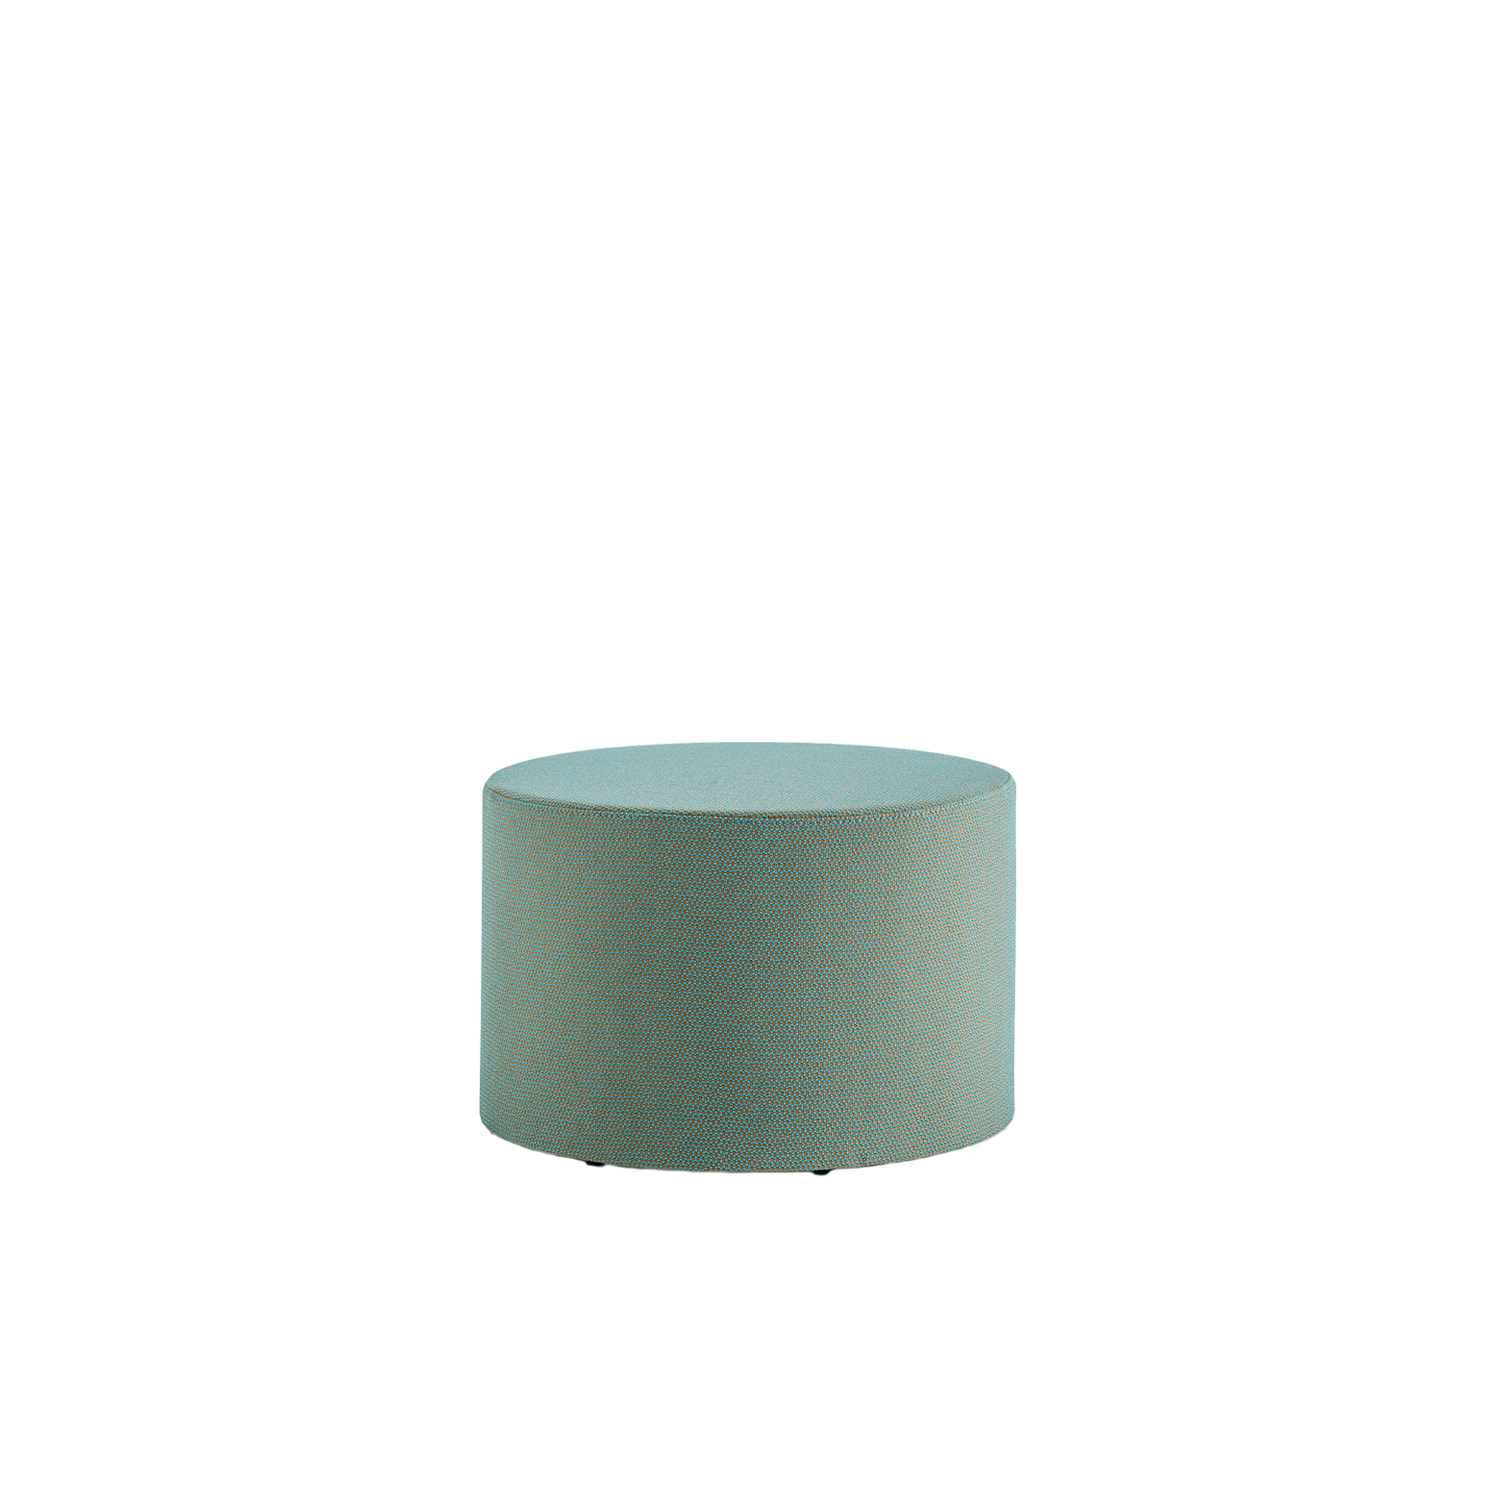 Wow 323 Round Pouf - Pouf that gives a casual and ironic touch to the contract and domestic environments. With a round shape of Ø 650mm, Wow is upholstered in polyurethane injected foam. | Matter of Stuff